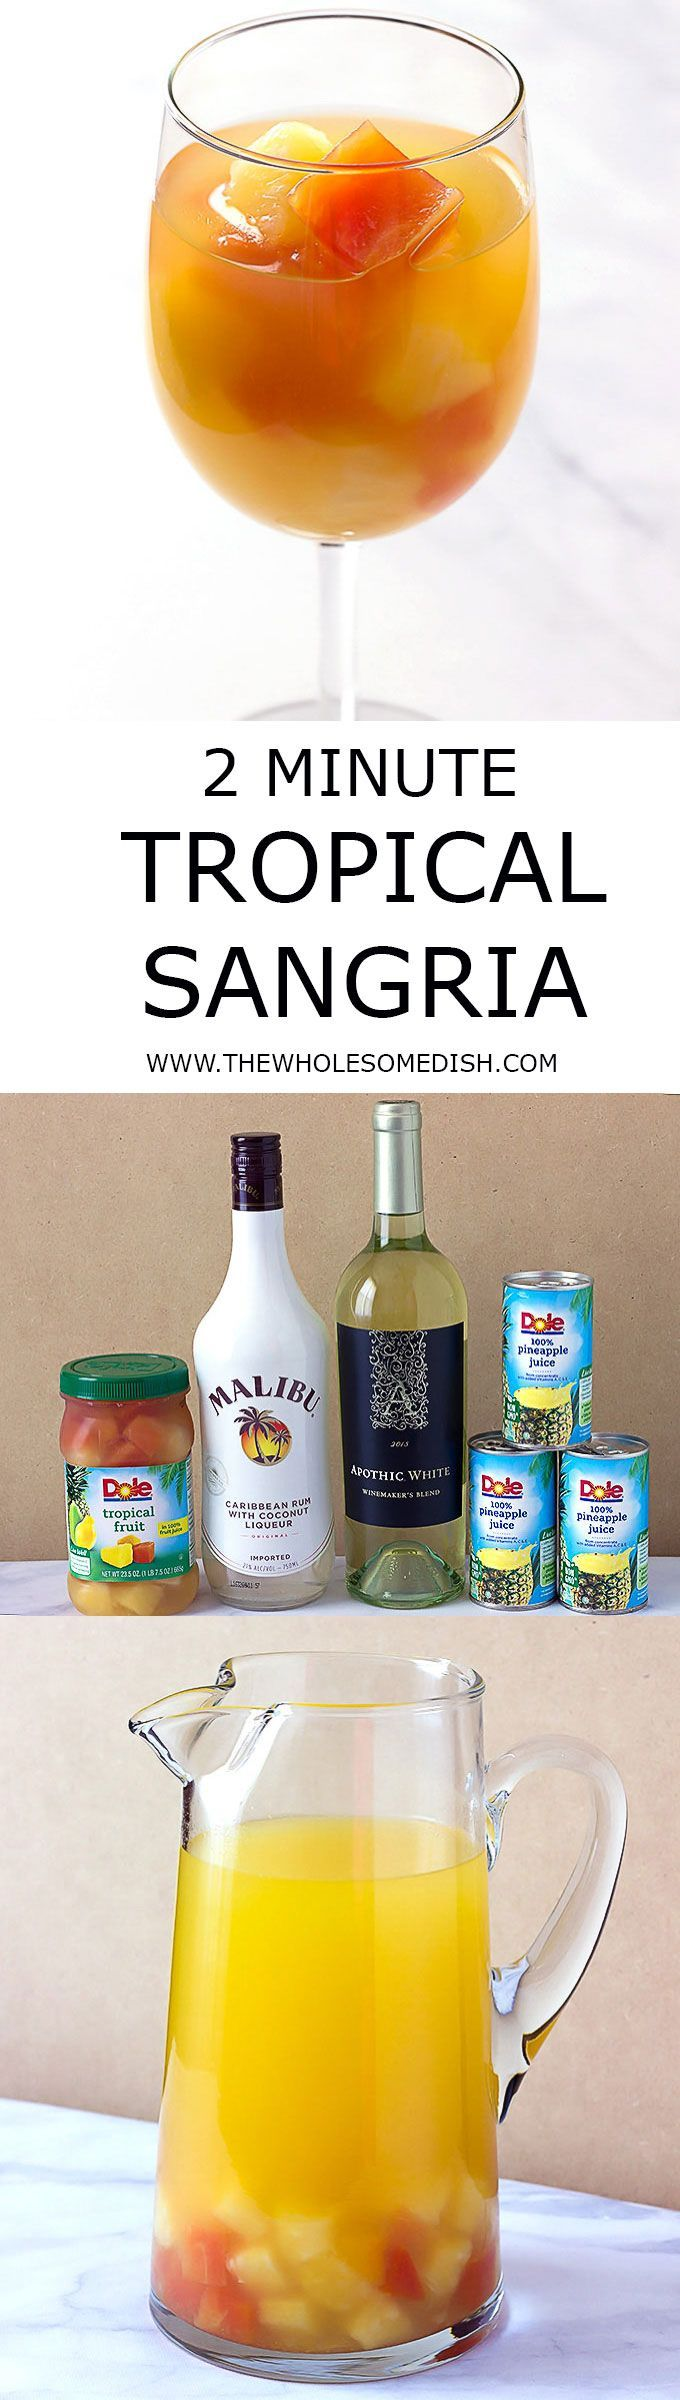 2 Minute Tropical Sangria - A simple tropical sangria recipe that can be made in minutes, made with Malibu coconut rum, pineapple juice, white wine, and mixed tropical fruit. via @afinks #rum